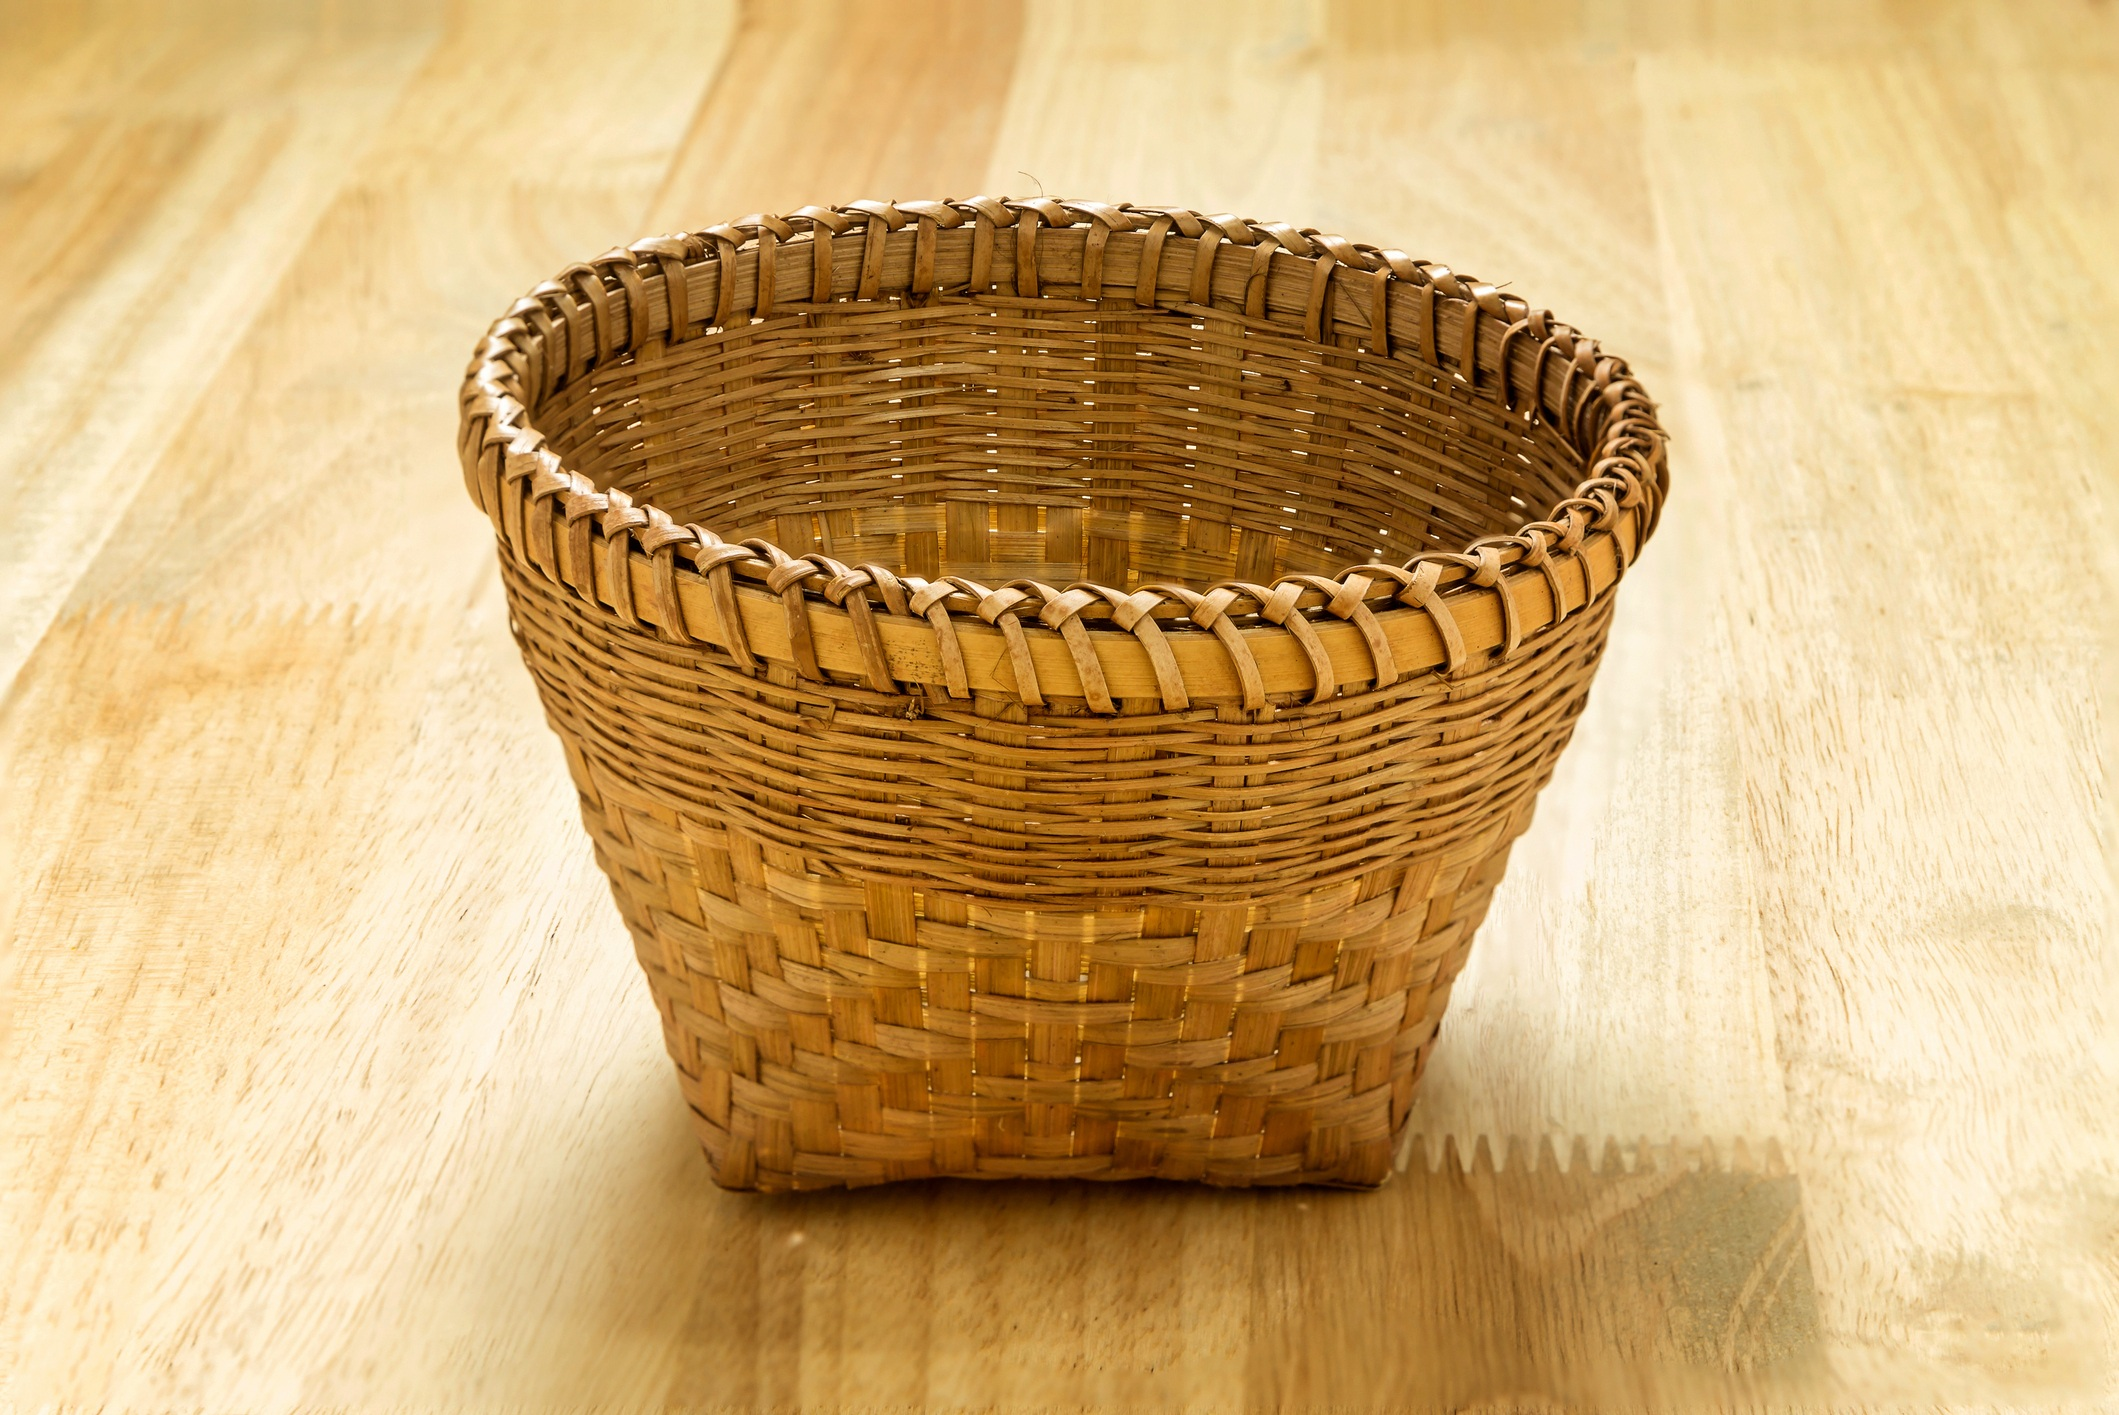 Wicker bamboo basket on wooden table